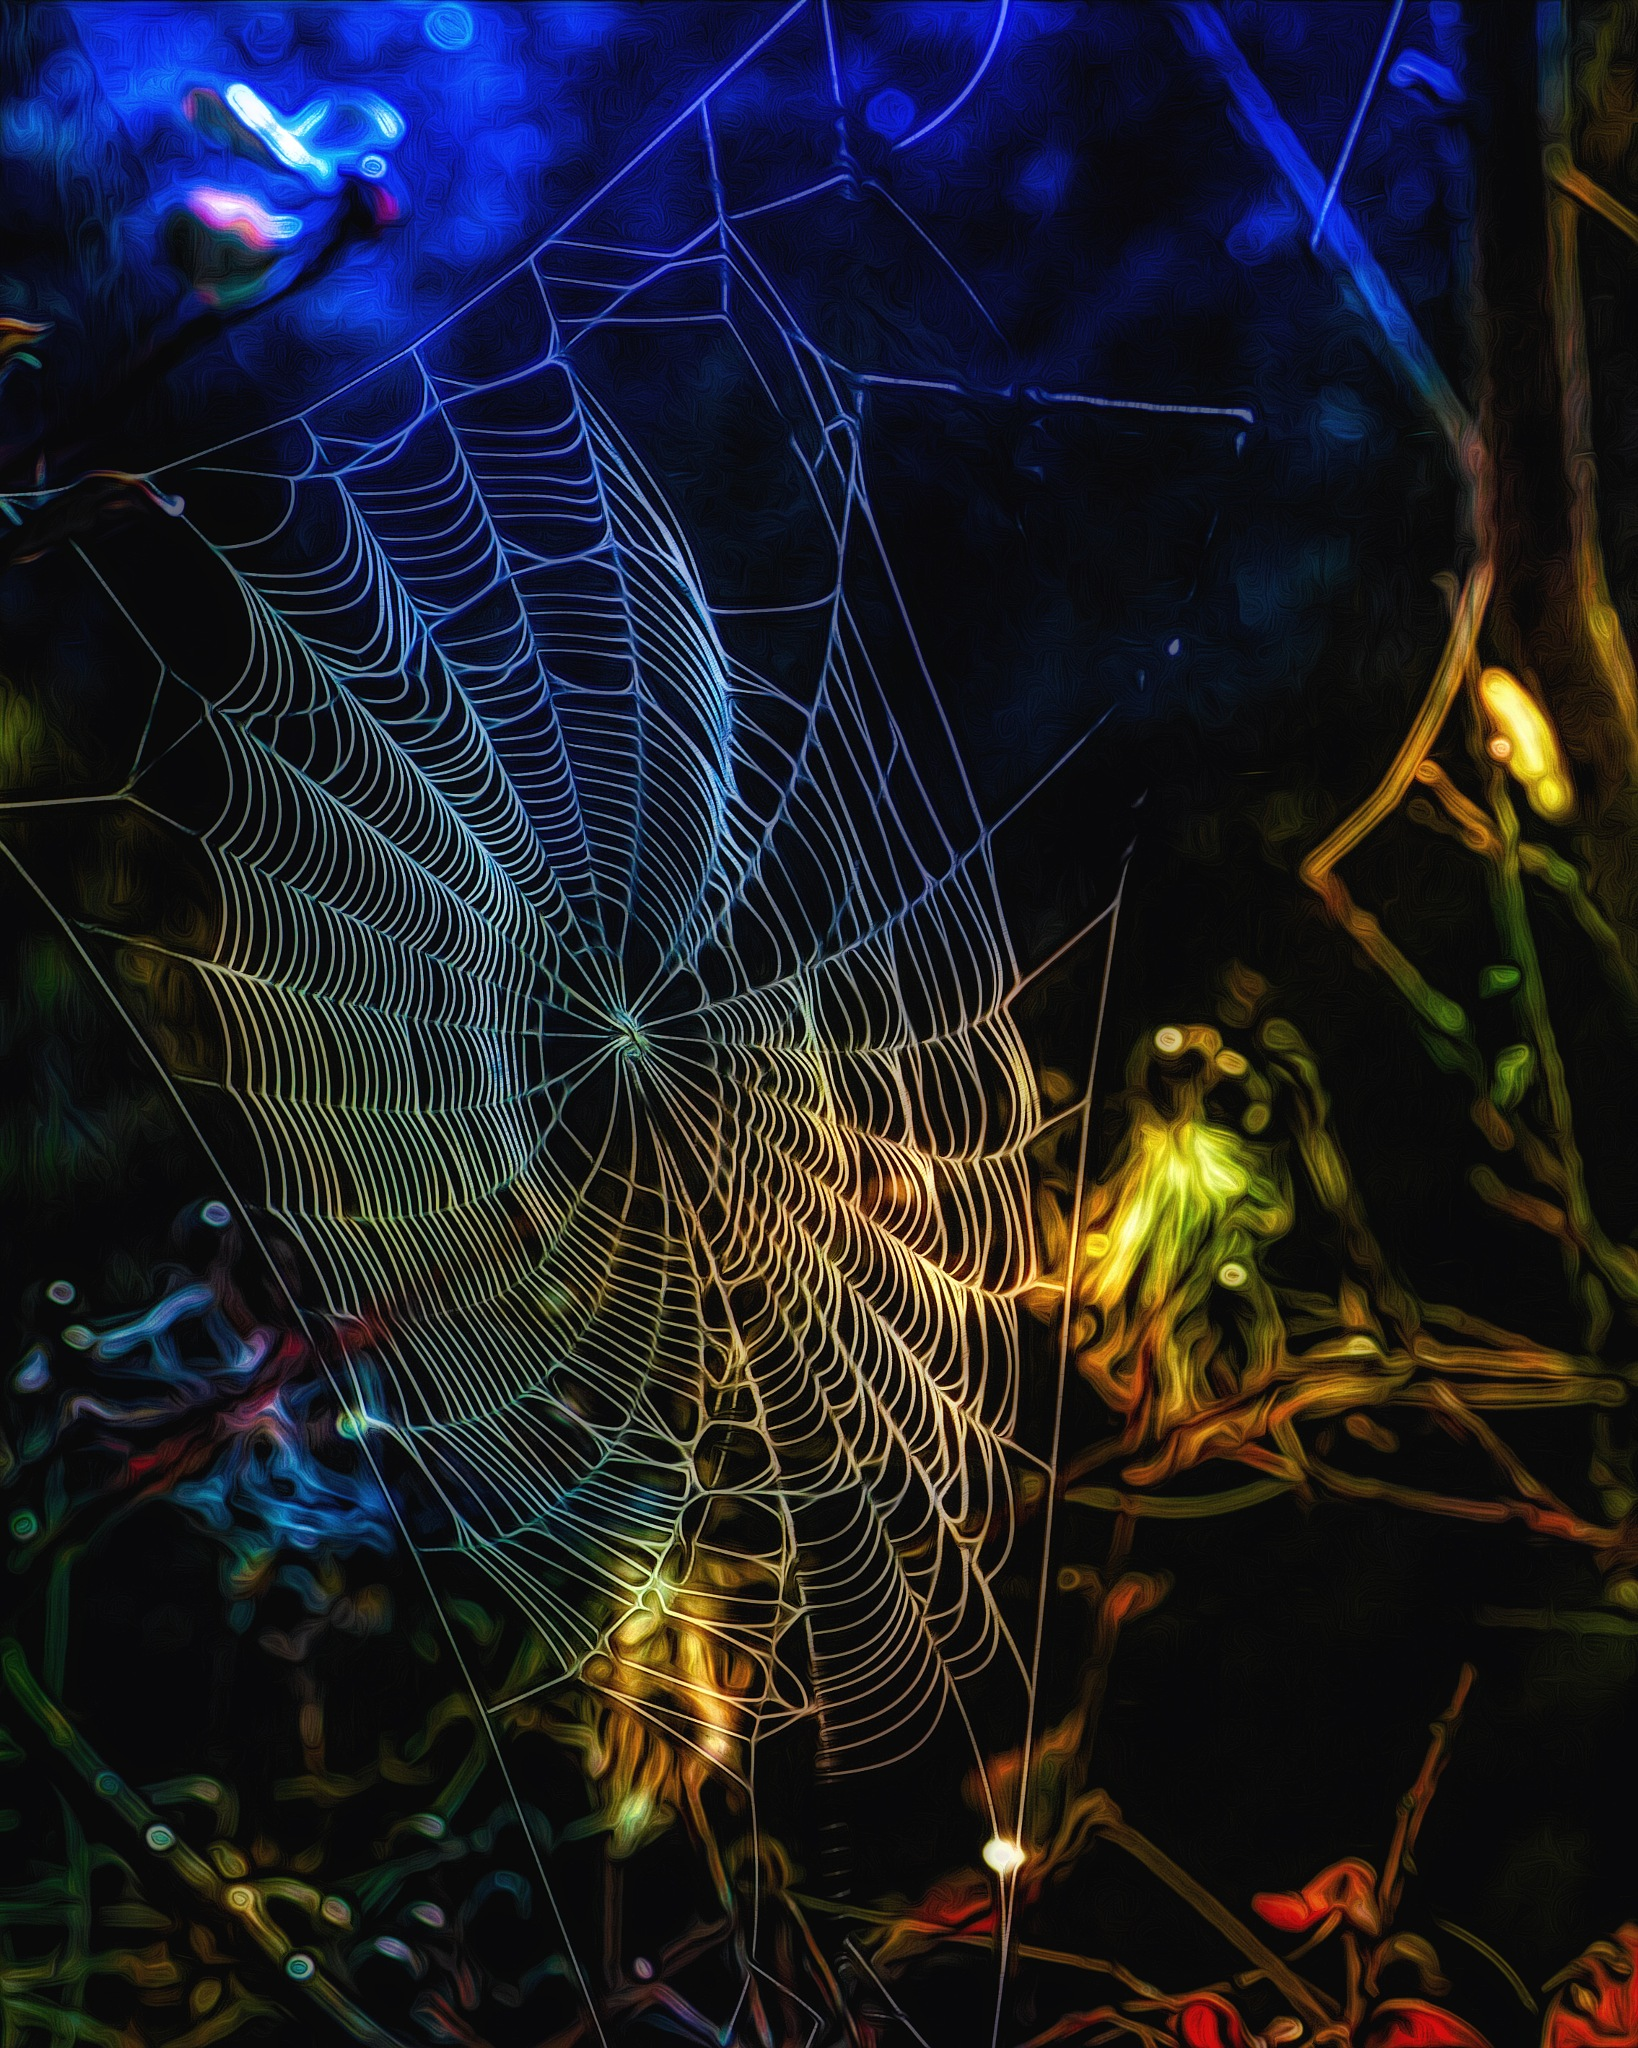 Real Spider Web by David Walters